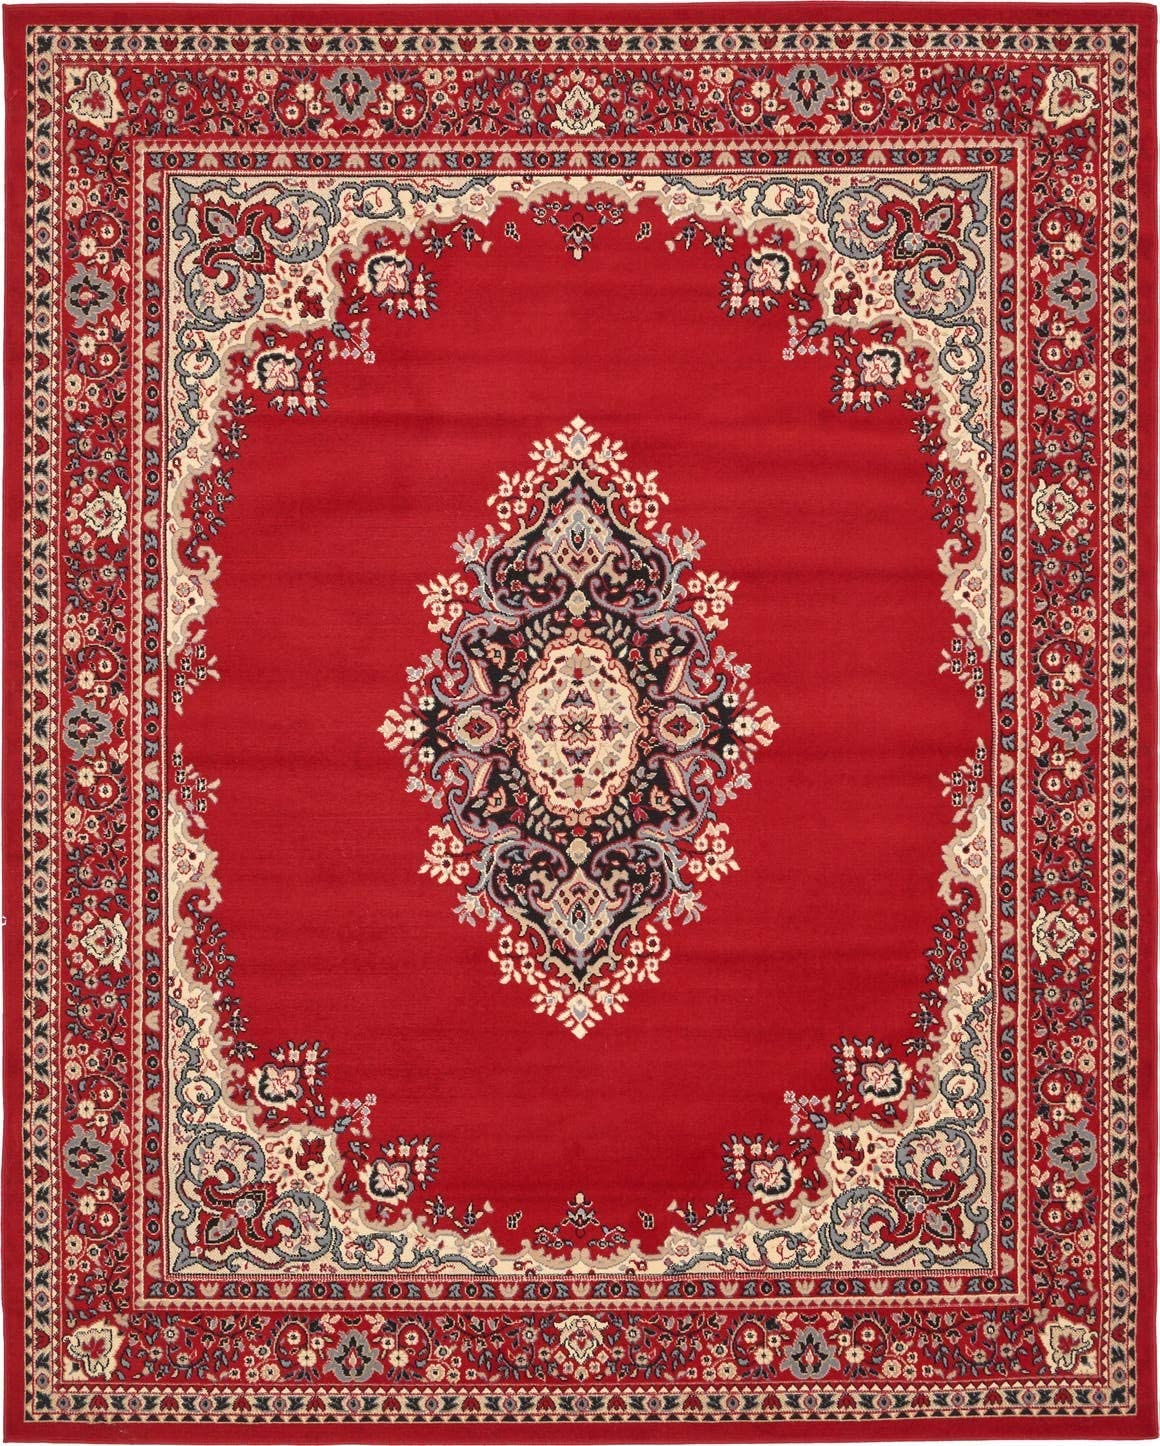 Unique Loom Reza Collection Classic Traditional Red Area Rug 8 0 x 10 0